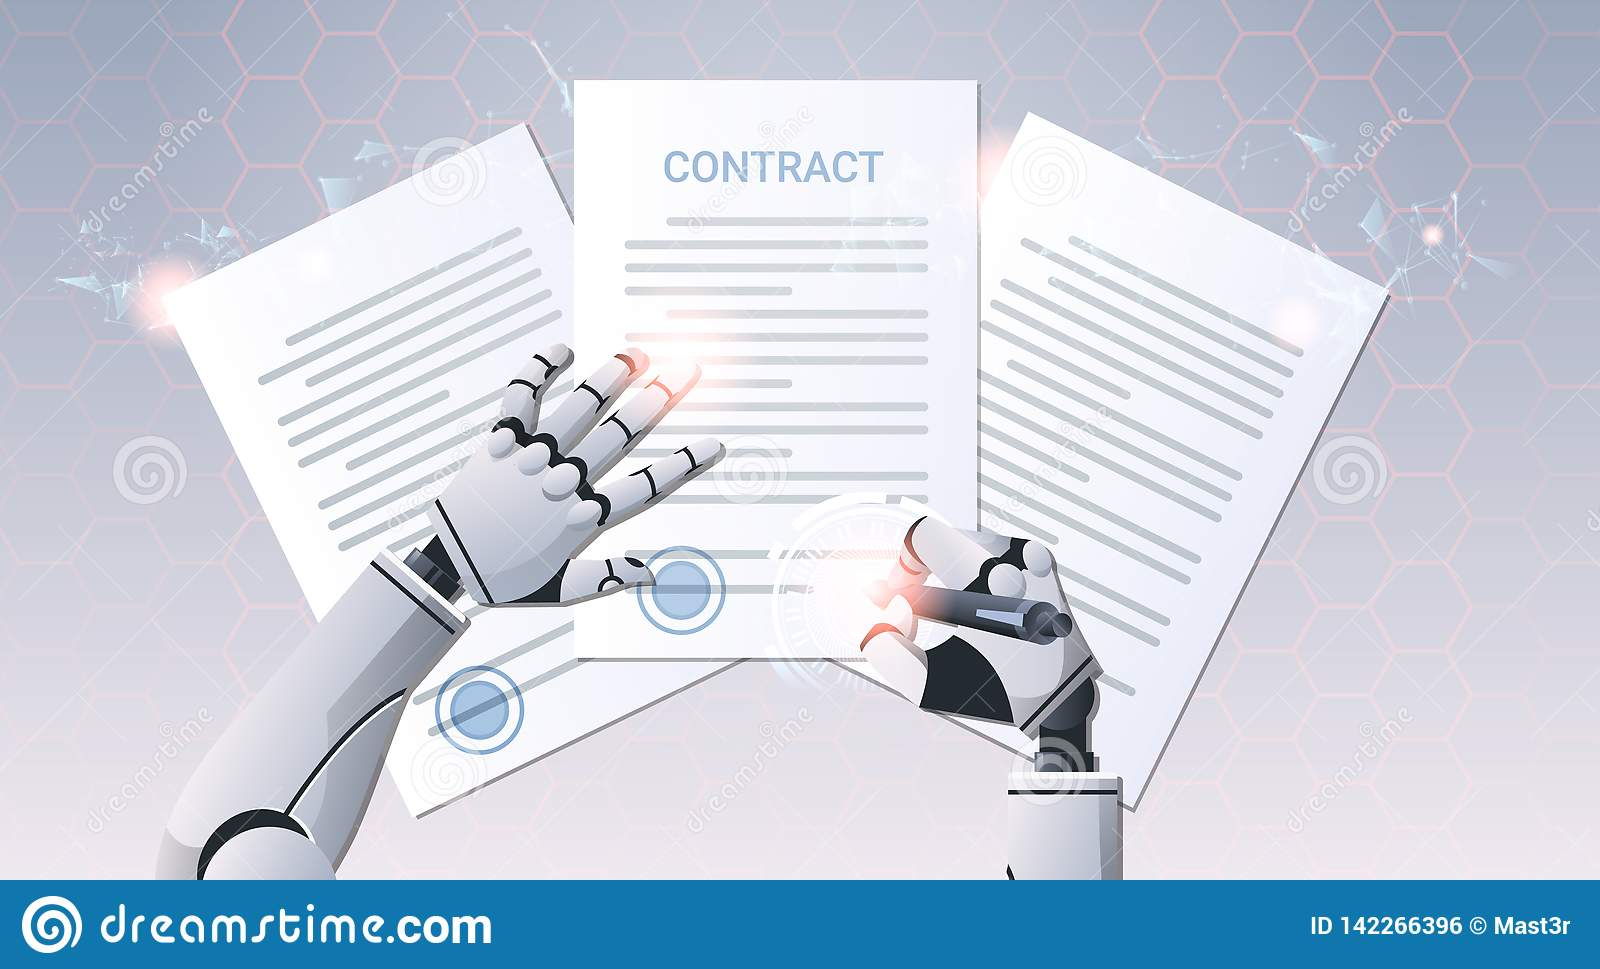 Robot hand holding pen signature document signing up contract humanoid sign agreement top angle view artificial